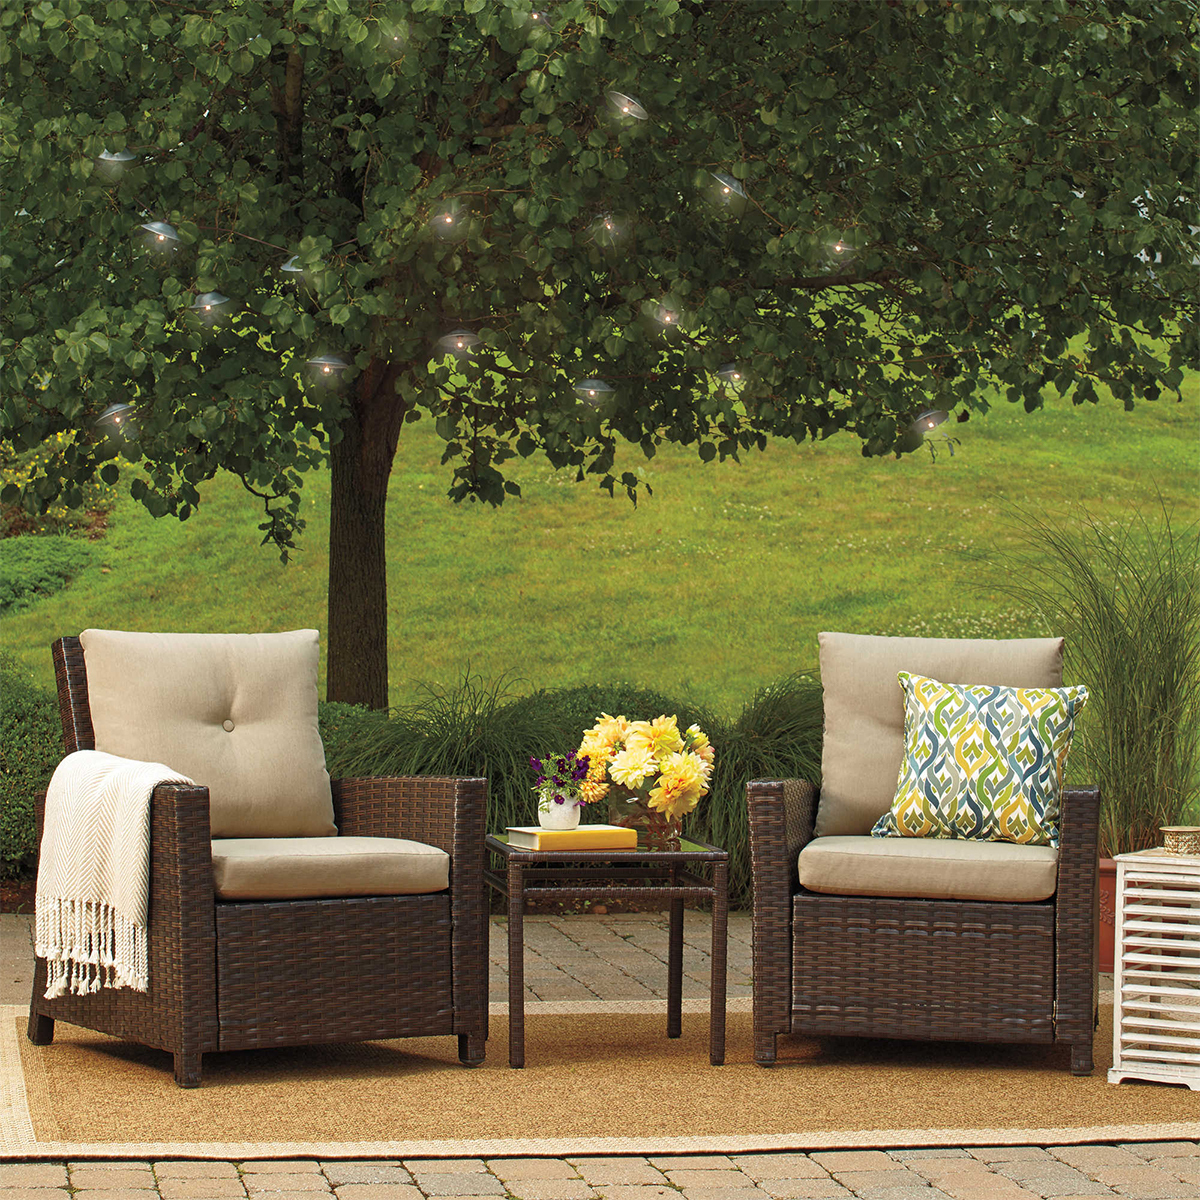 Forever Patio Catalina Sofa with Cushions NC4573S-EX Forever Patio Catalina Sofa with Cushions NC4573S-EX new pics